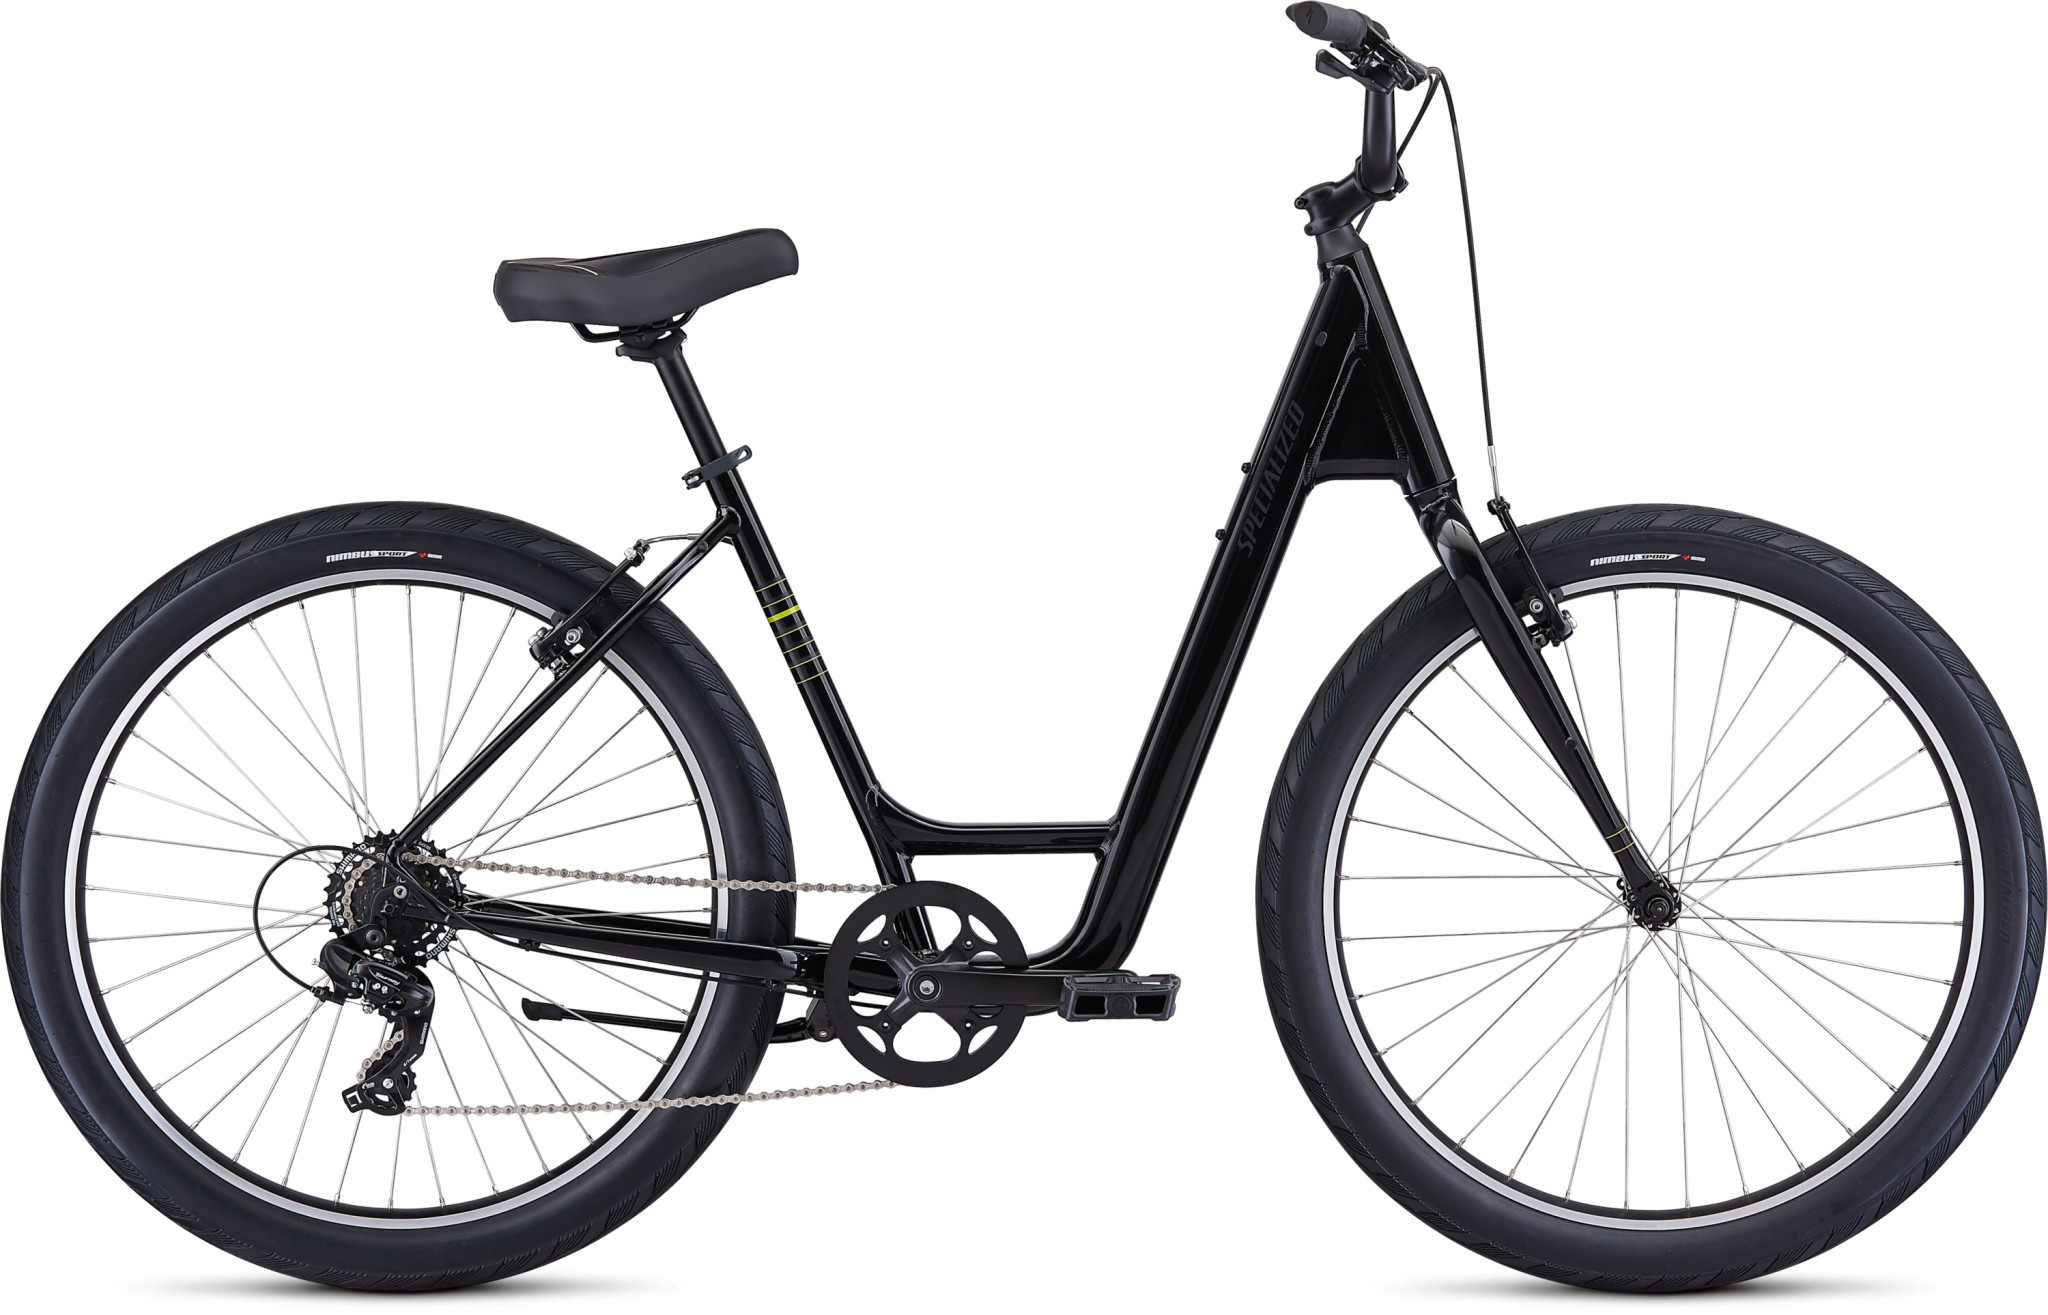 Specialized 20 Roll - Low-EnTry